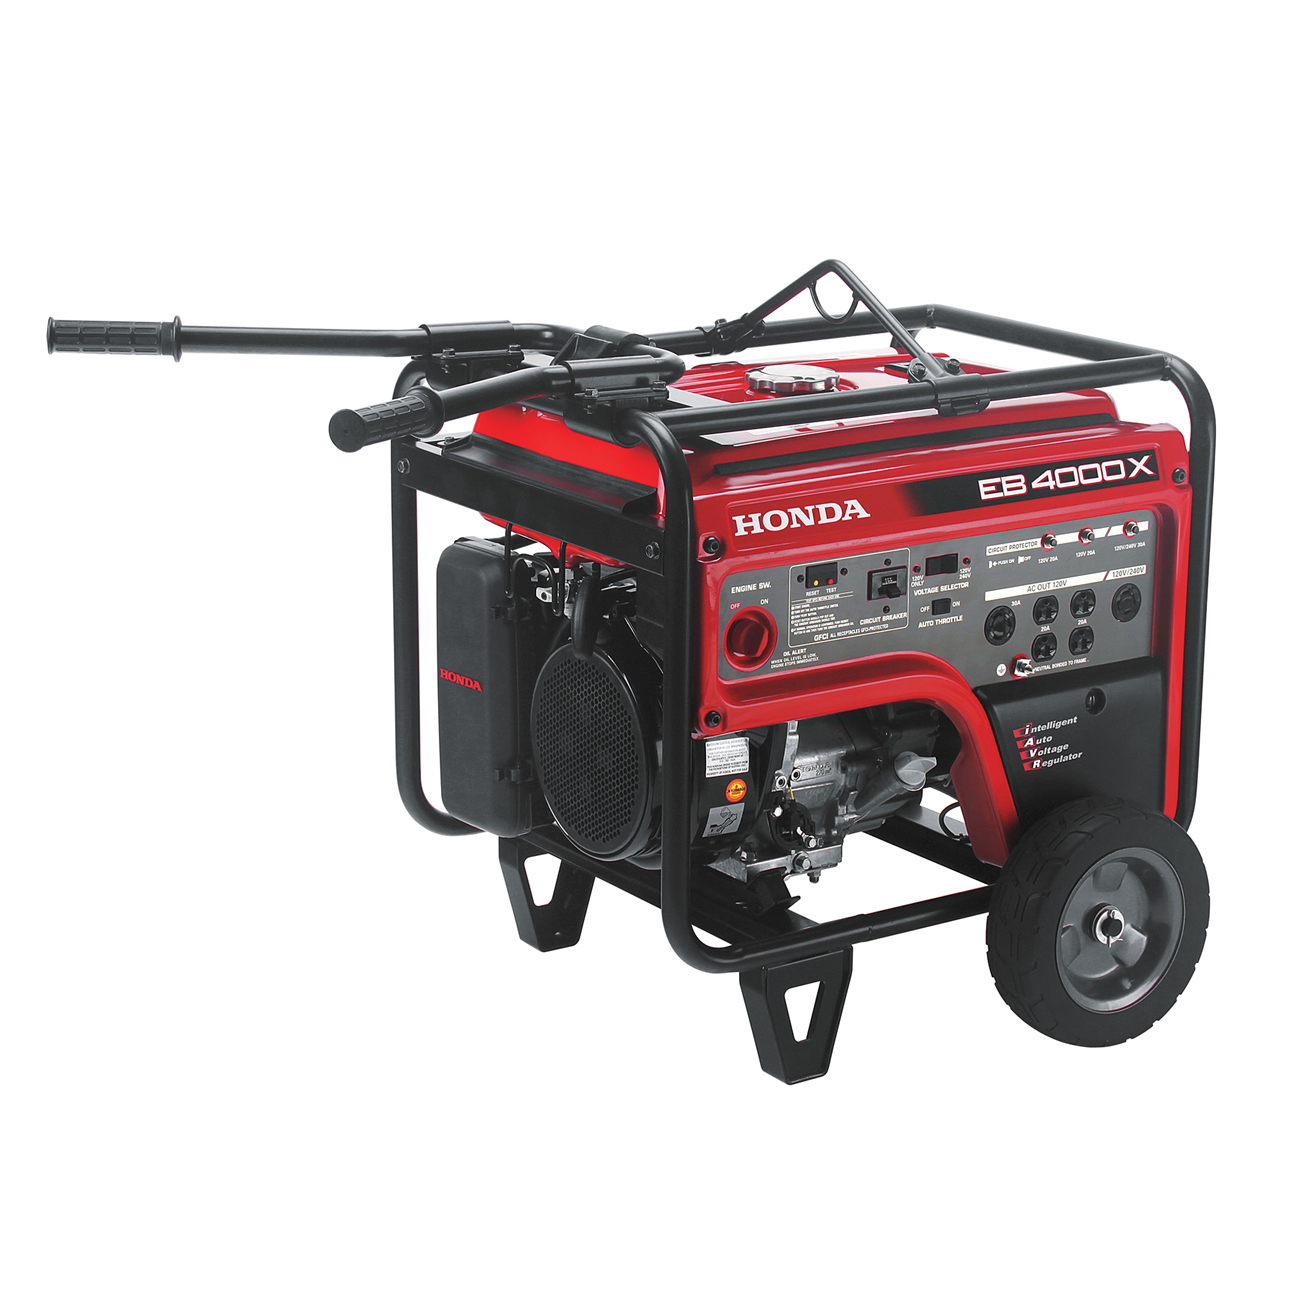 Honda EB4000XAT 4000W Gas Generator 3500W Rated Recoil Start - W/ Wheel Kit